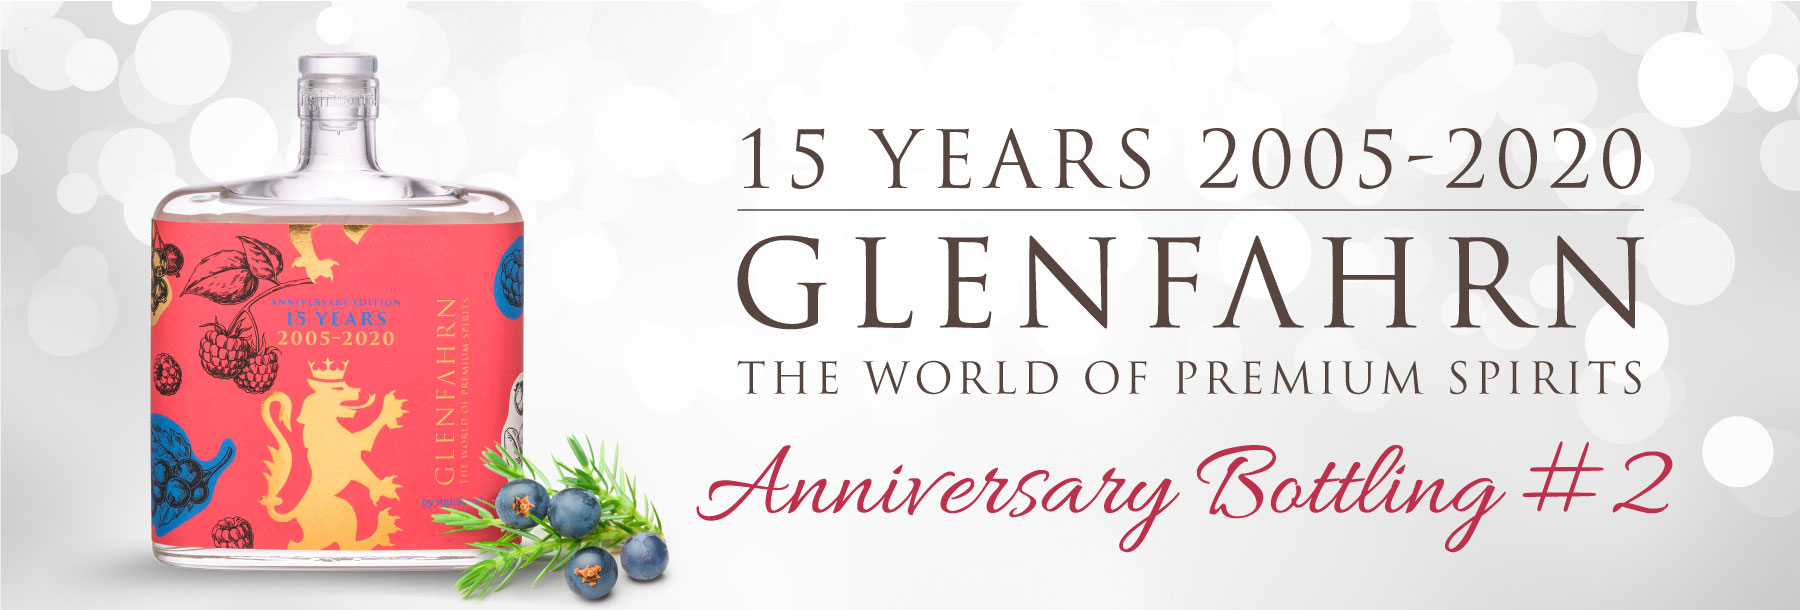 Glen fahrn 15 anniversary bottling berry gin nginious